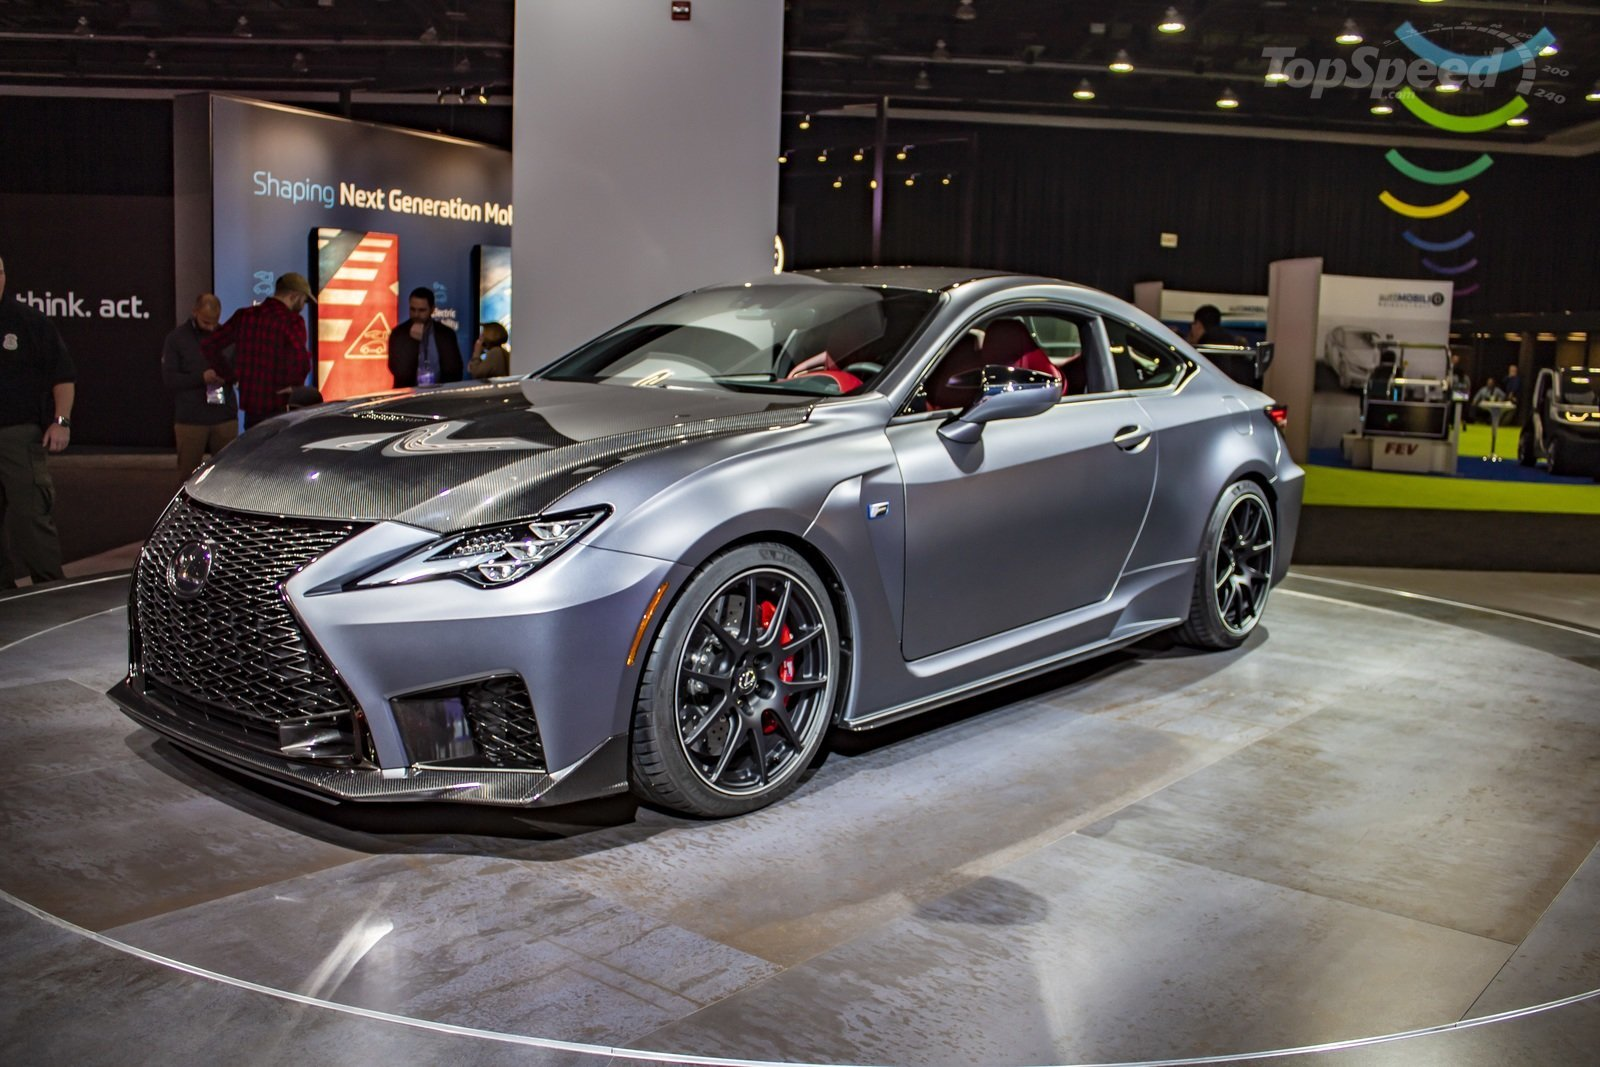 2020 Lexus RC F Track Edition Pictures, Photos, Wallpapers ...